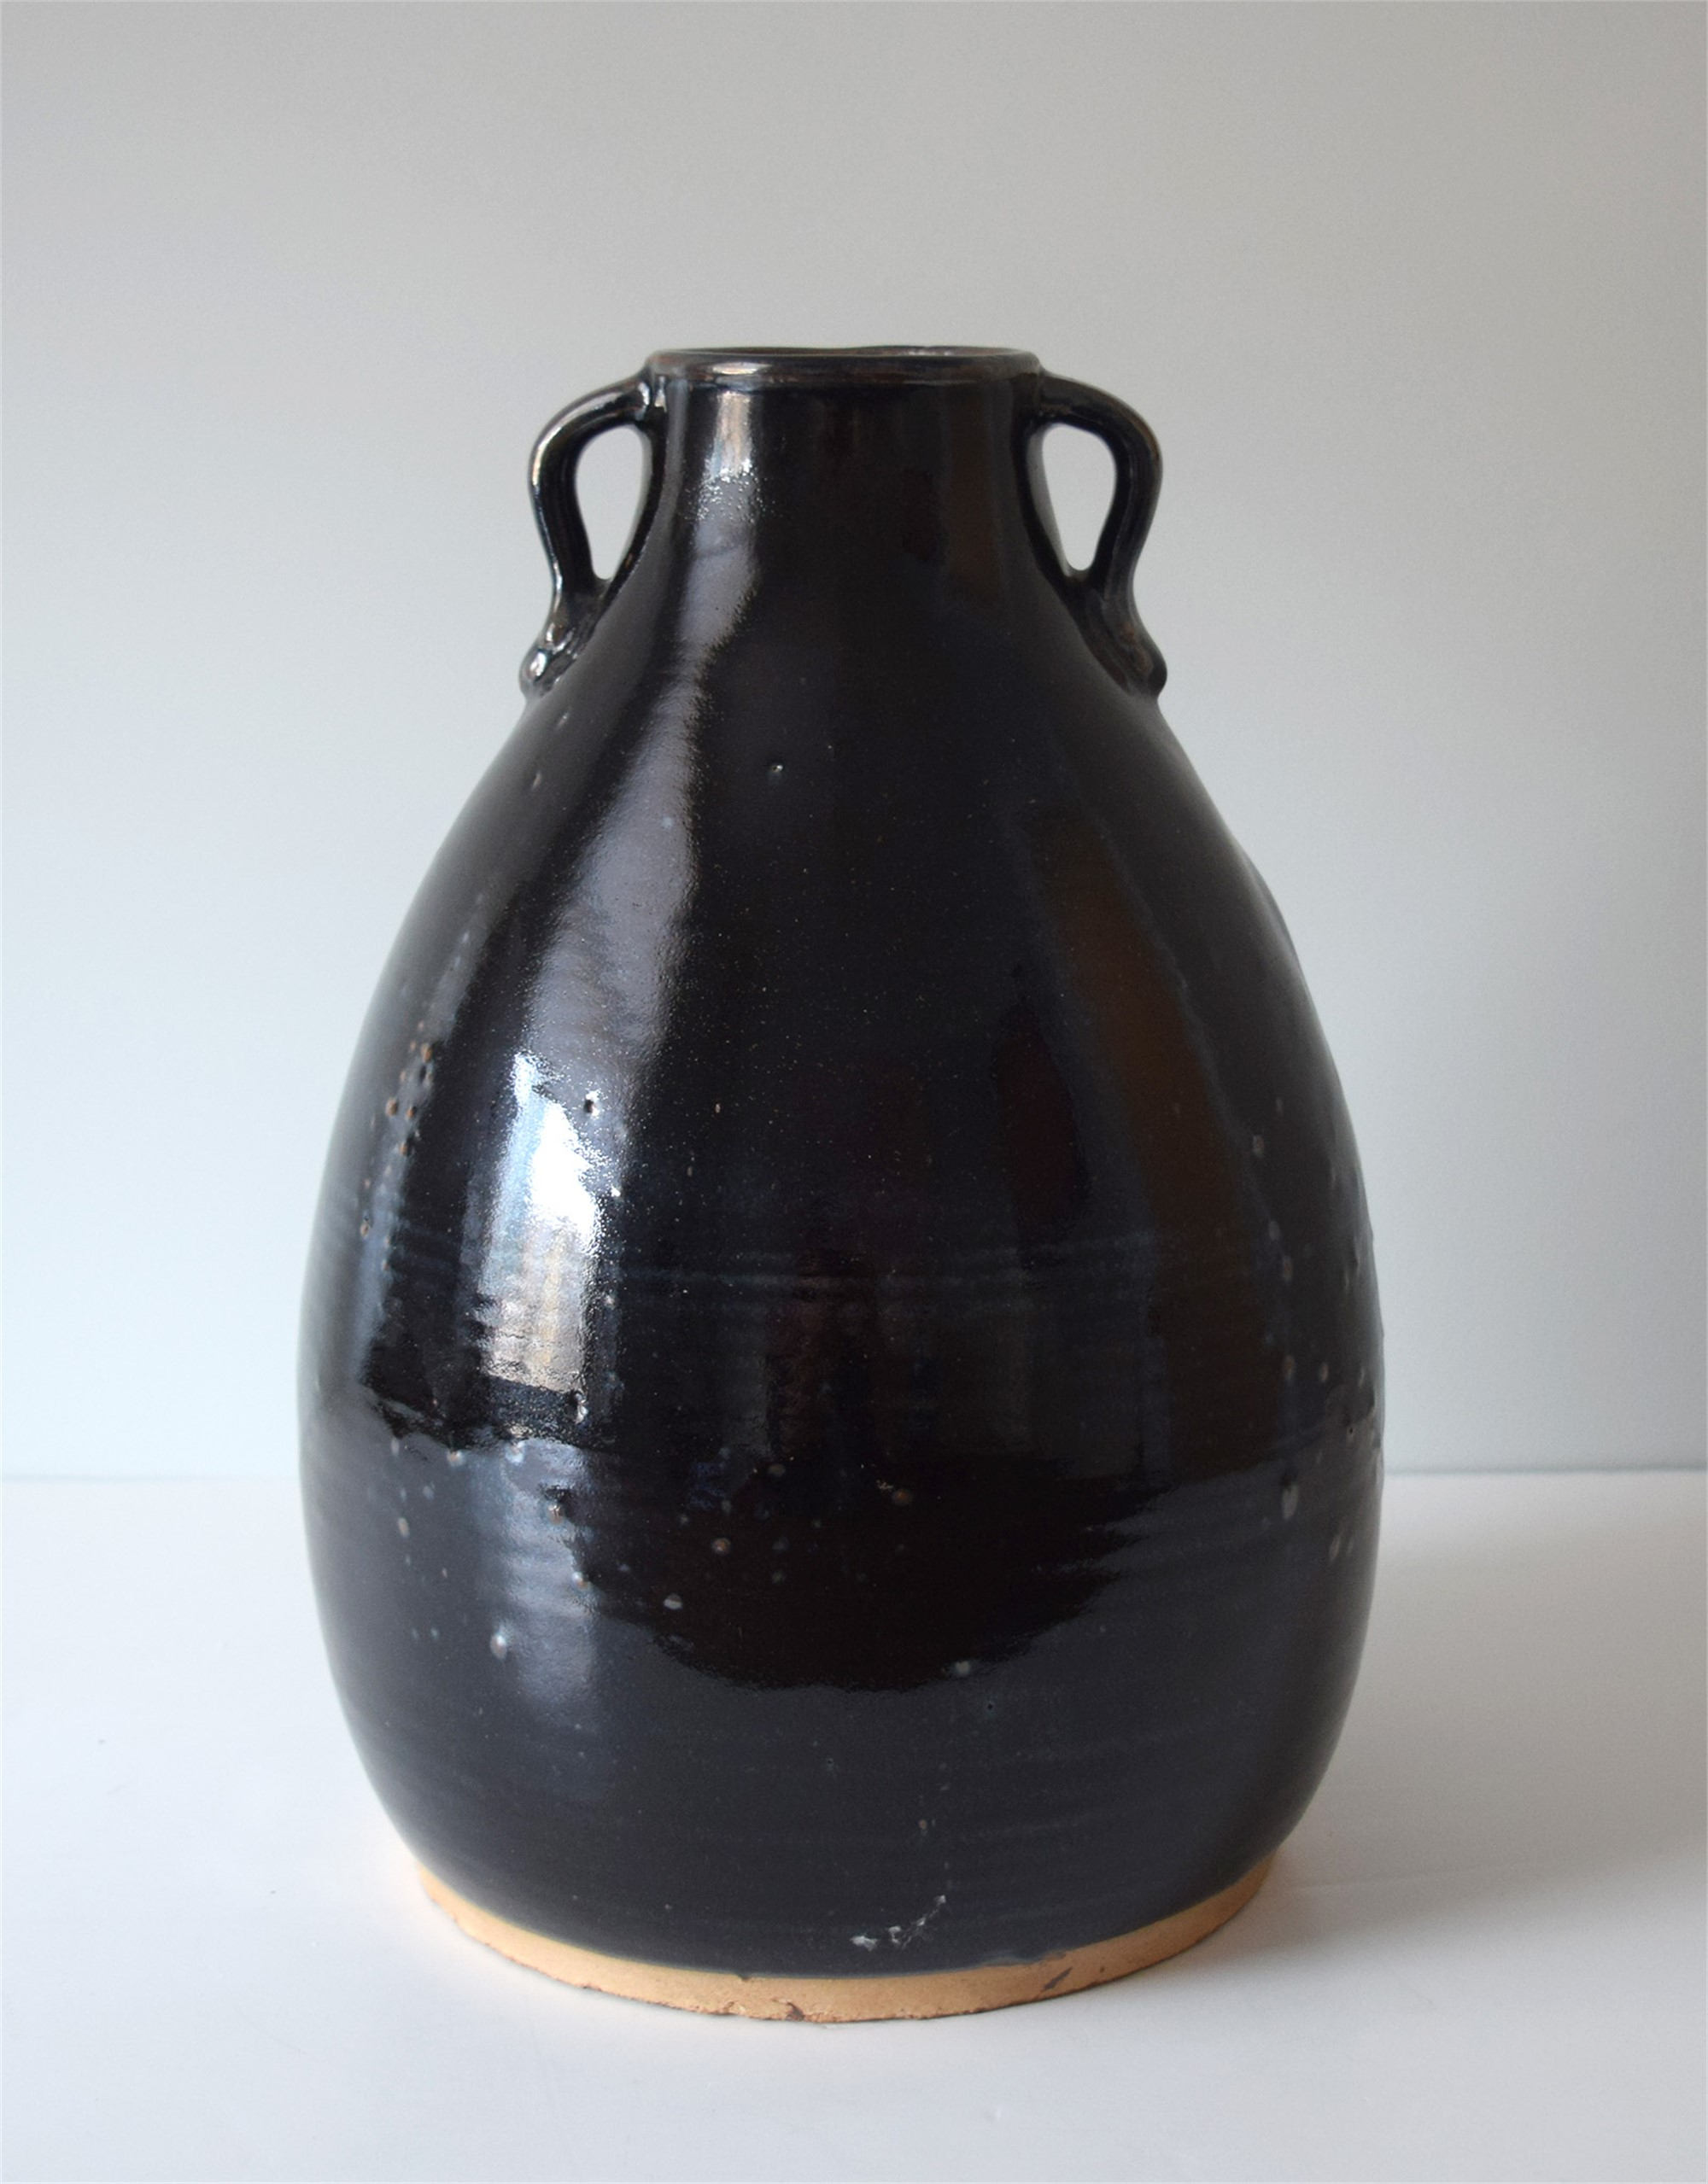 BLACK GLAZED JAR WITH EAR LOOP HANDLES